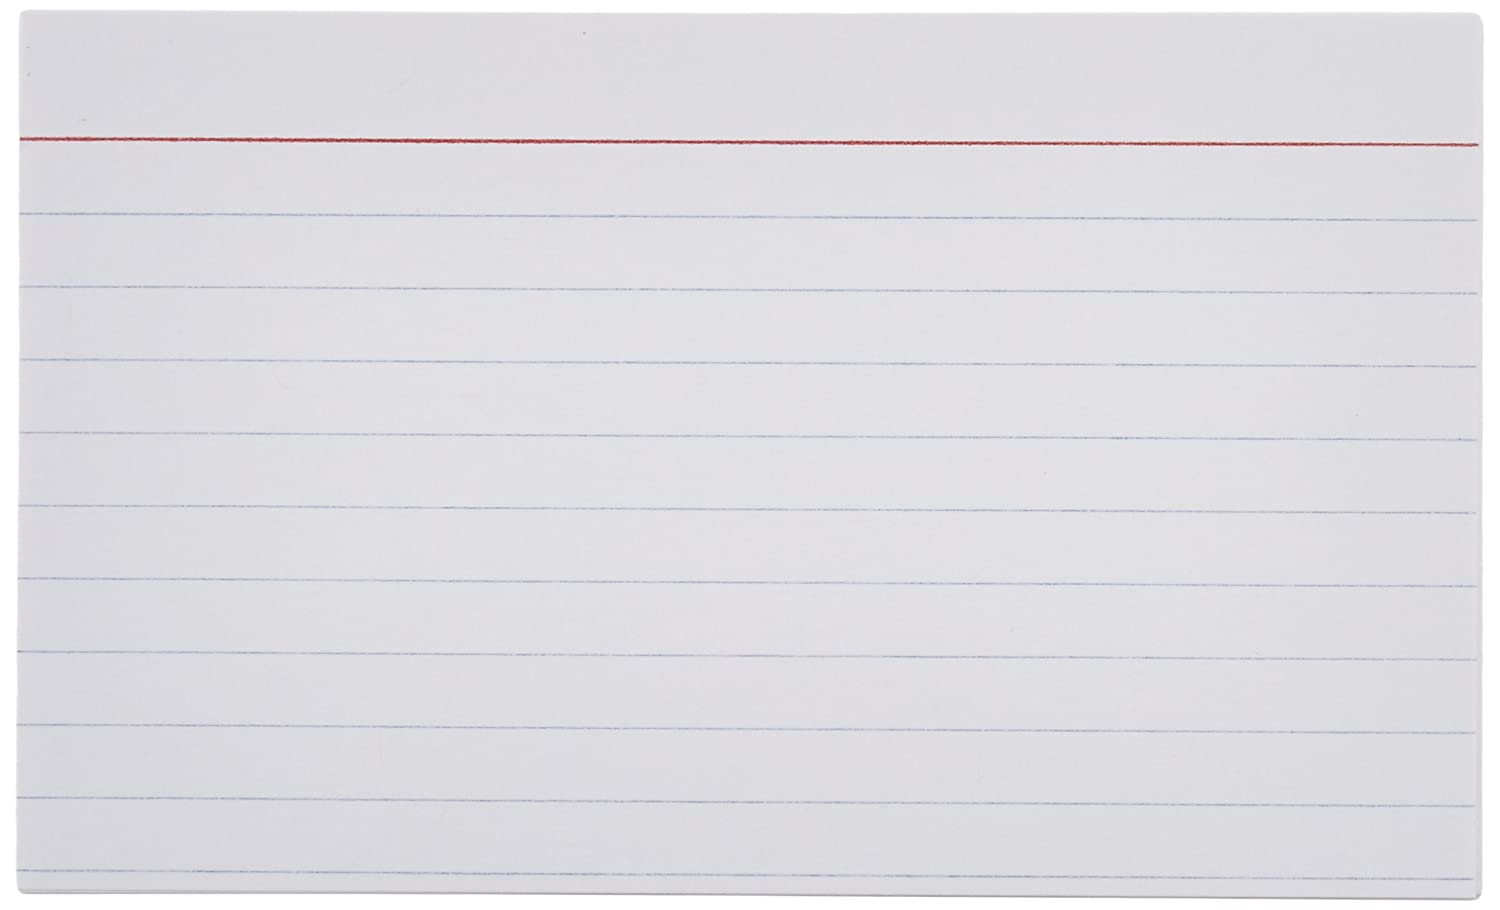 size of a notecard